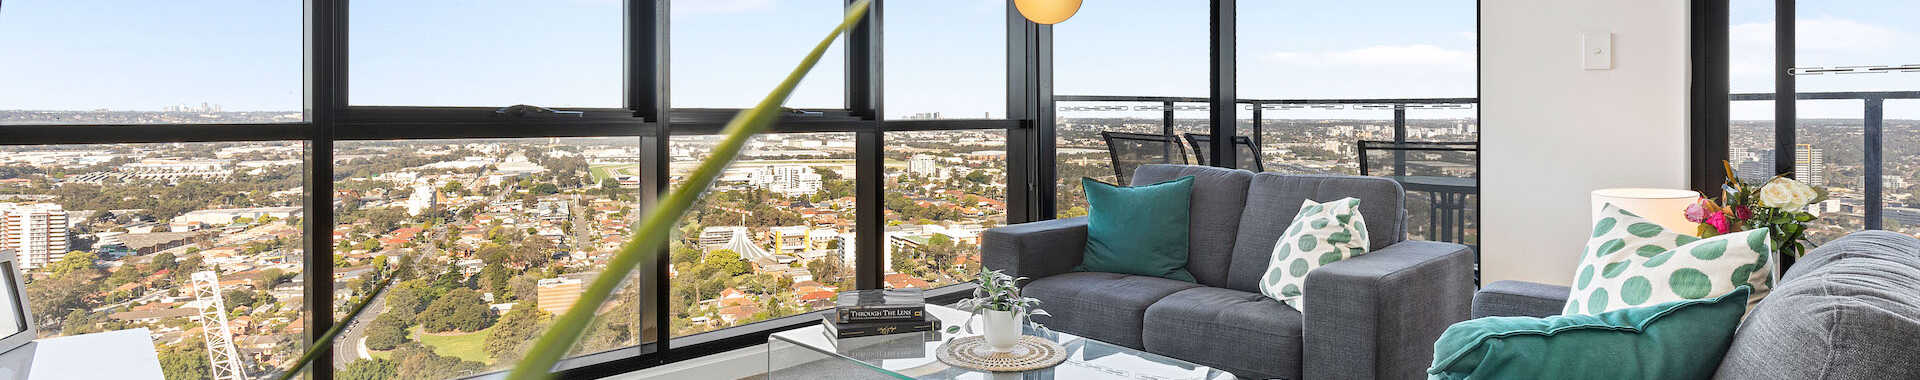 Astra Apartments Parramatta Hassall 3 bed corporate lounge